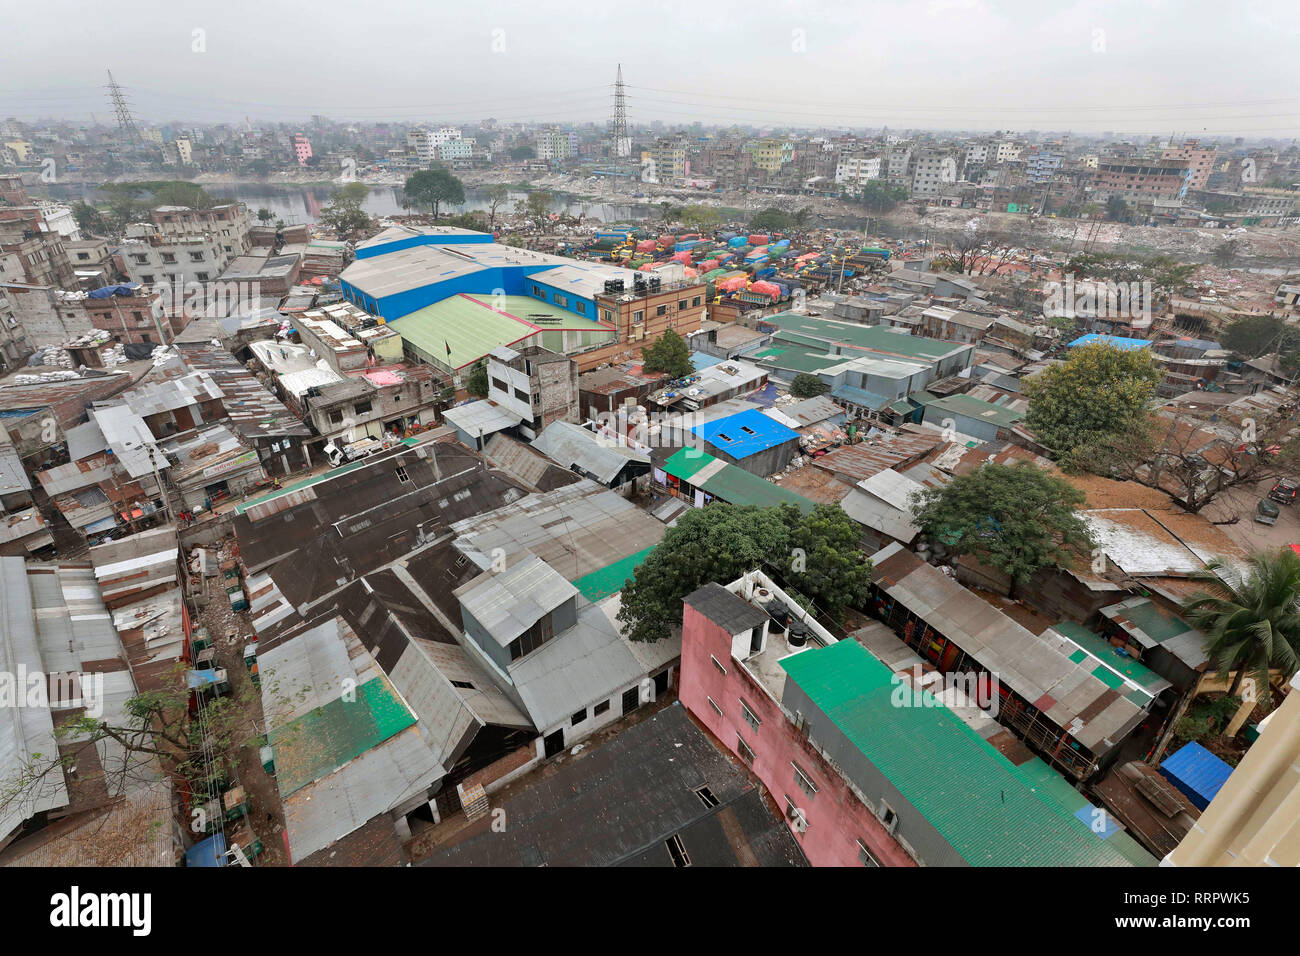 Dhaka, Bangladesh - February 26, 2019: A view of the Dhaka Metropolitan city Lalbagh area Dhaka. A city of over 15 million people, appears to be bursting at the seams. It presents, almost everywhere, a spectacle of squalor, shanty dwellings, awful traffic congestion, shortage of basic utility services, lack of recreation sites or natural parks and playgrounds, unclean air, intrusion of commercial establishments and manufacturing into residential areas, etc. Credit: SK Hasan Ali/Alamy Live News - Stock Image